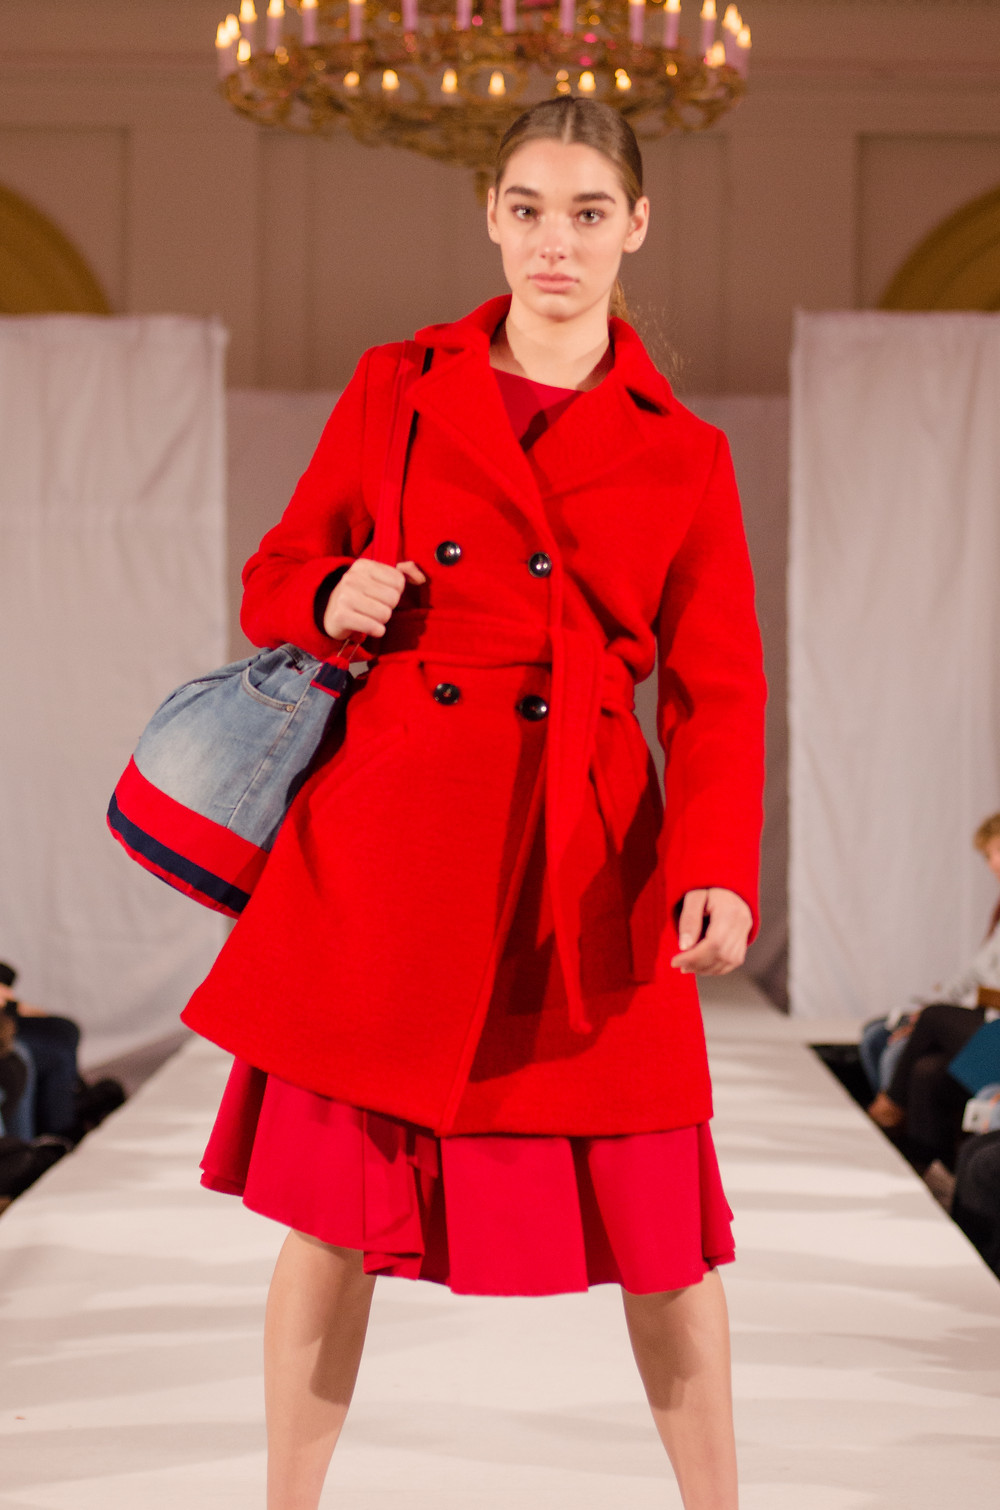 The Upcycle Bucket Bag on the Runway at Fair Fashion, Utrecht